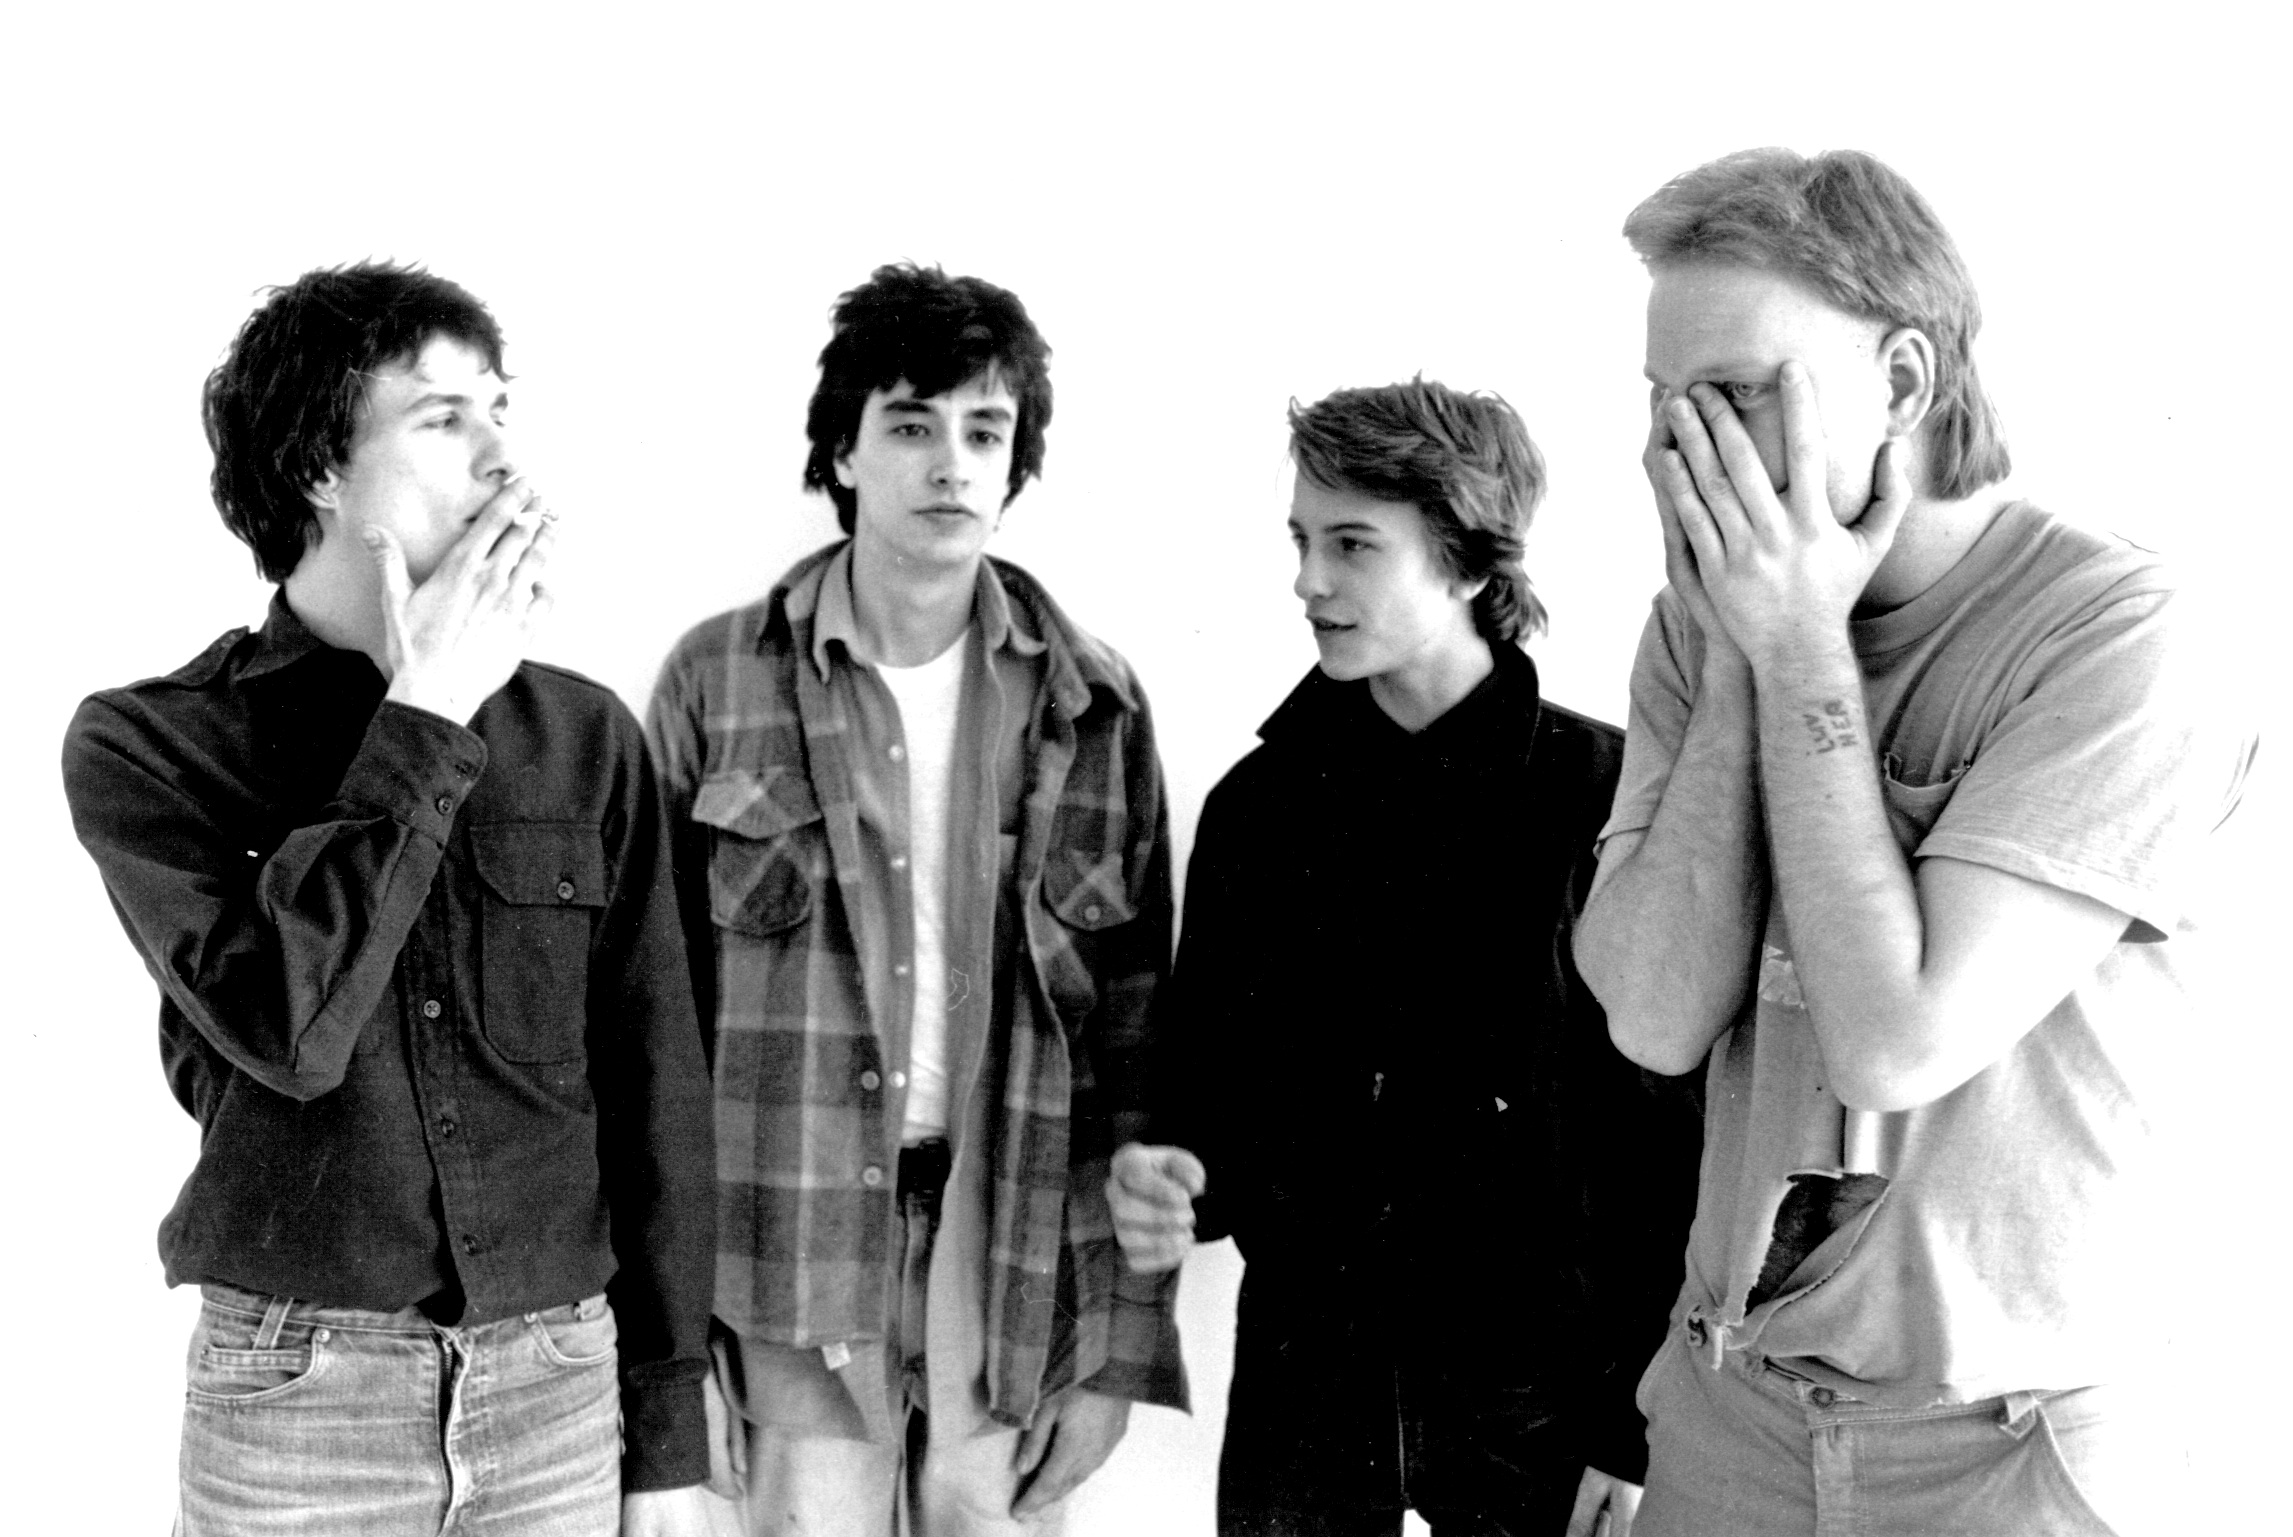 Song of the Day: The Replacements - Take Me Down to the Hospital